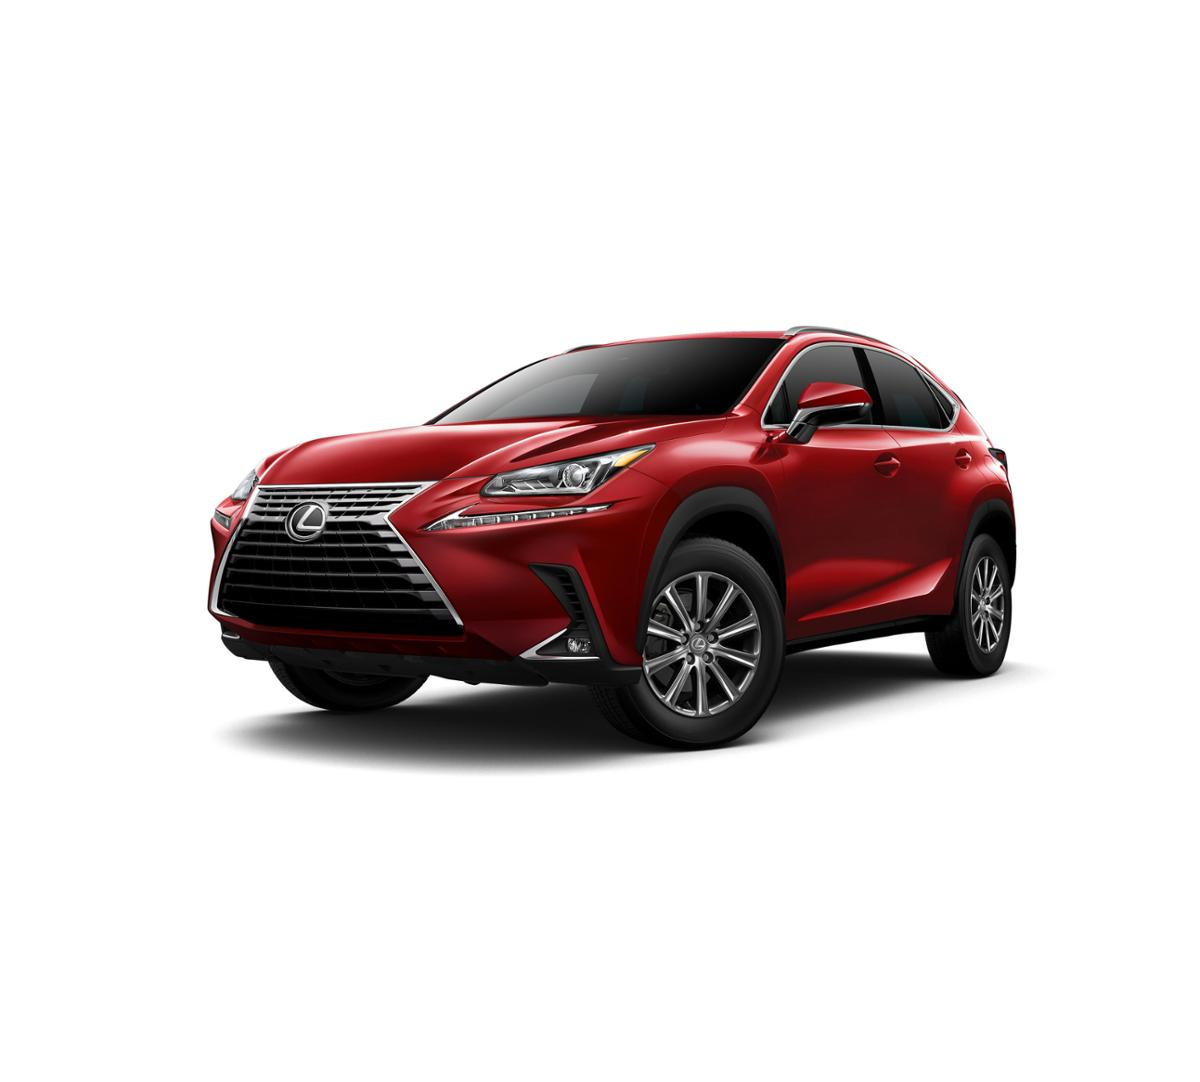 2019 Lexus NX 300 Vehicle Photo in Danvers, MA 01923